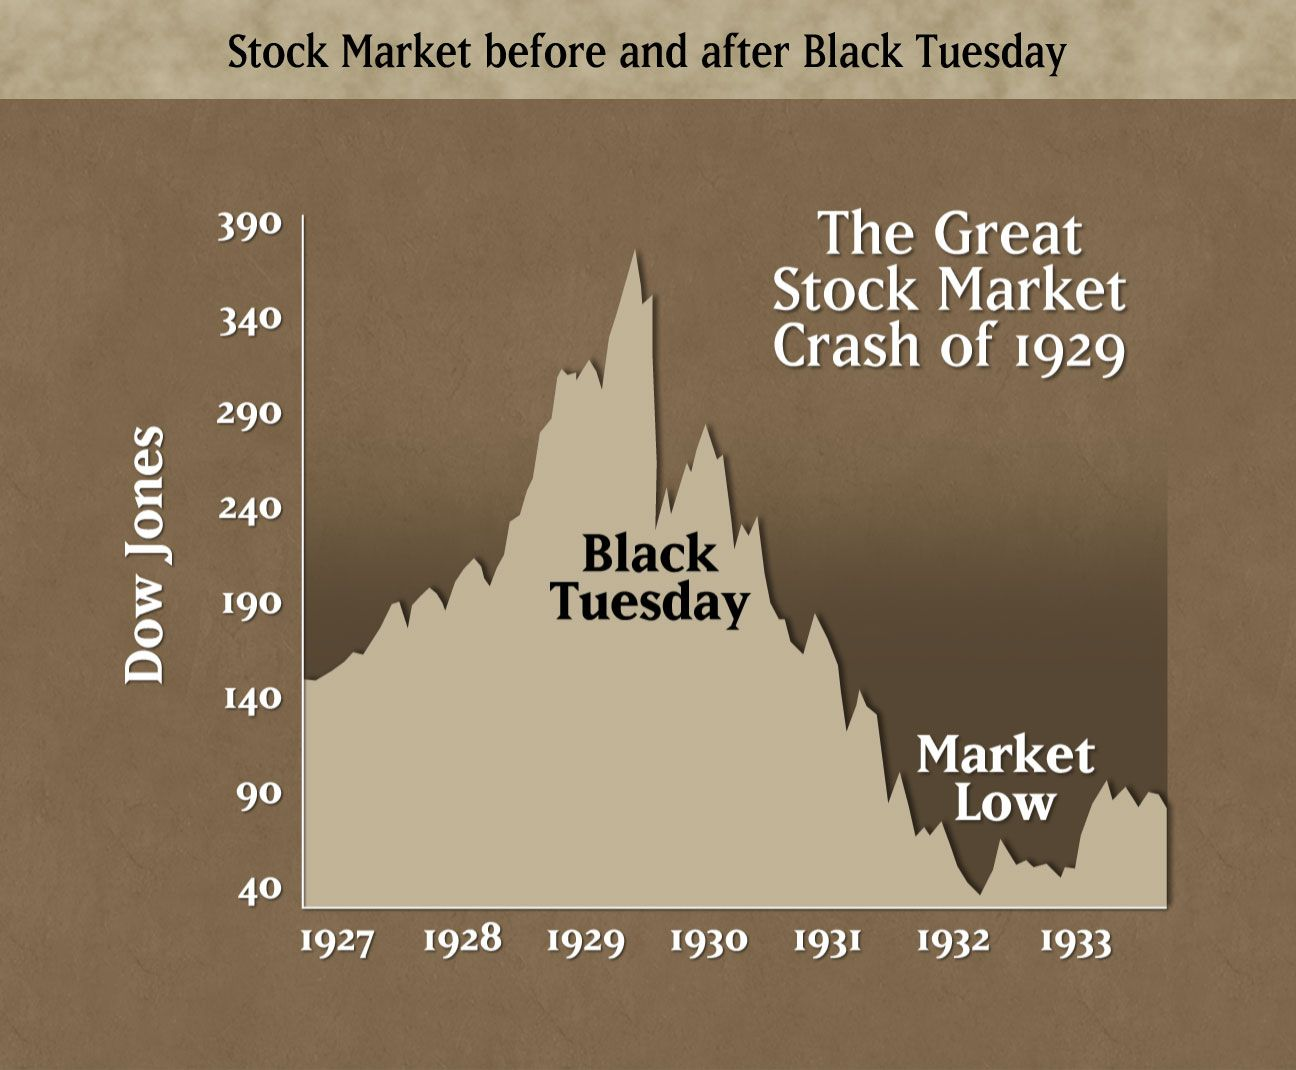 This Shows How Drastic The Stock Market Change Was On Back Tuesday Compared To The Rest Of The Surrounding Years